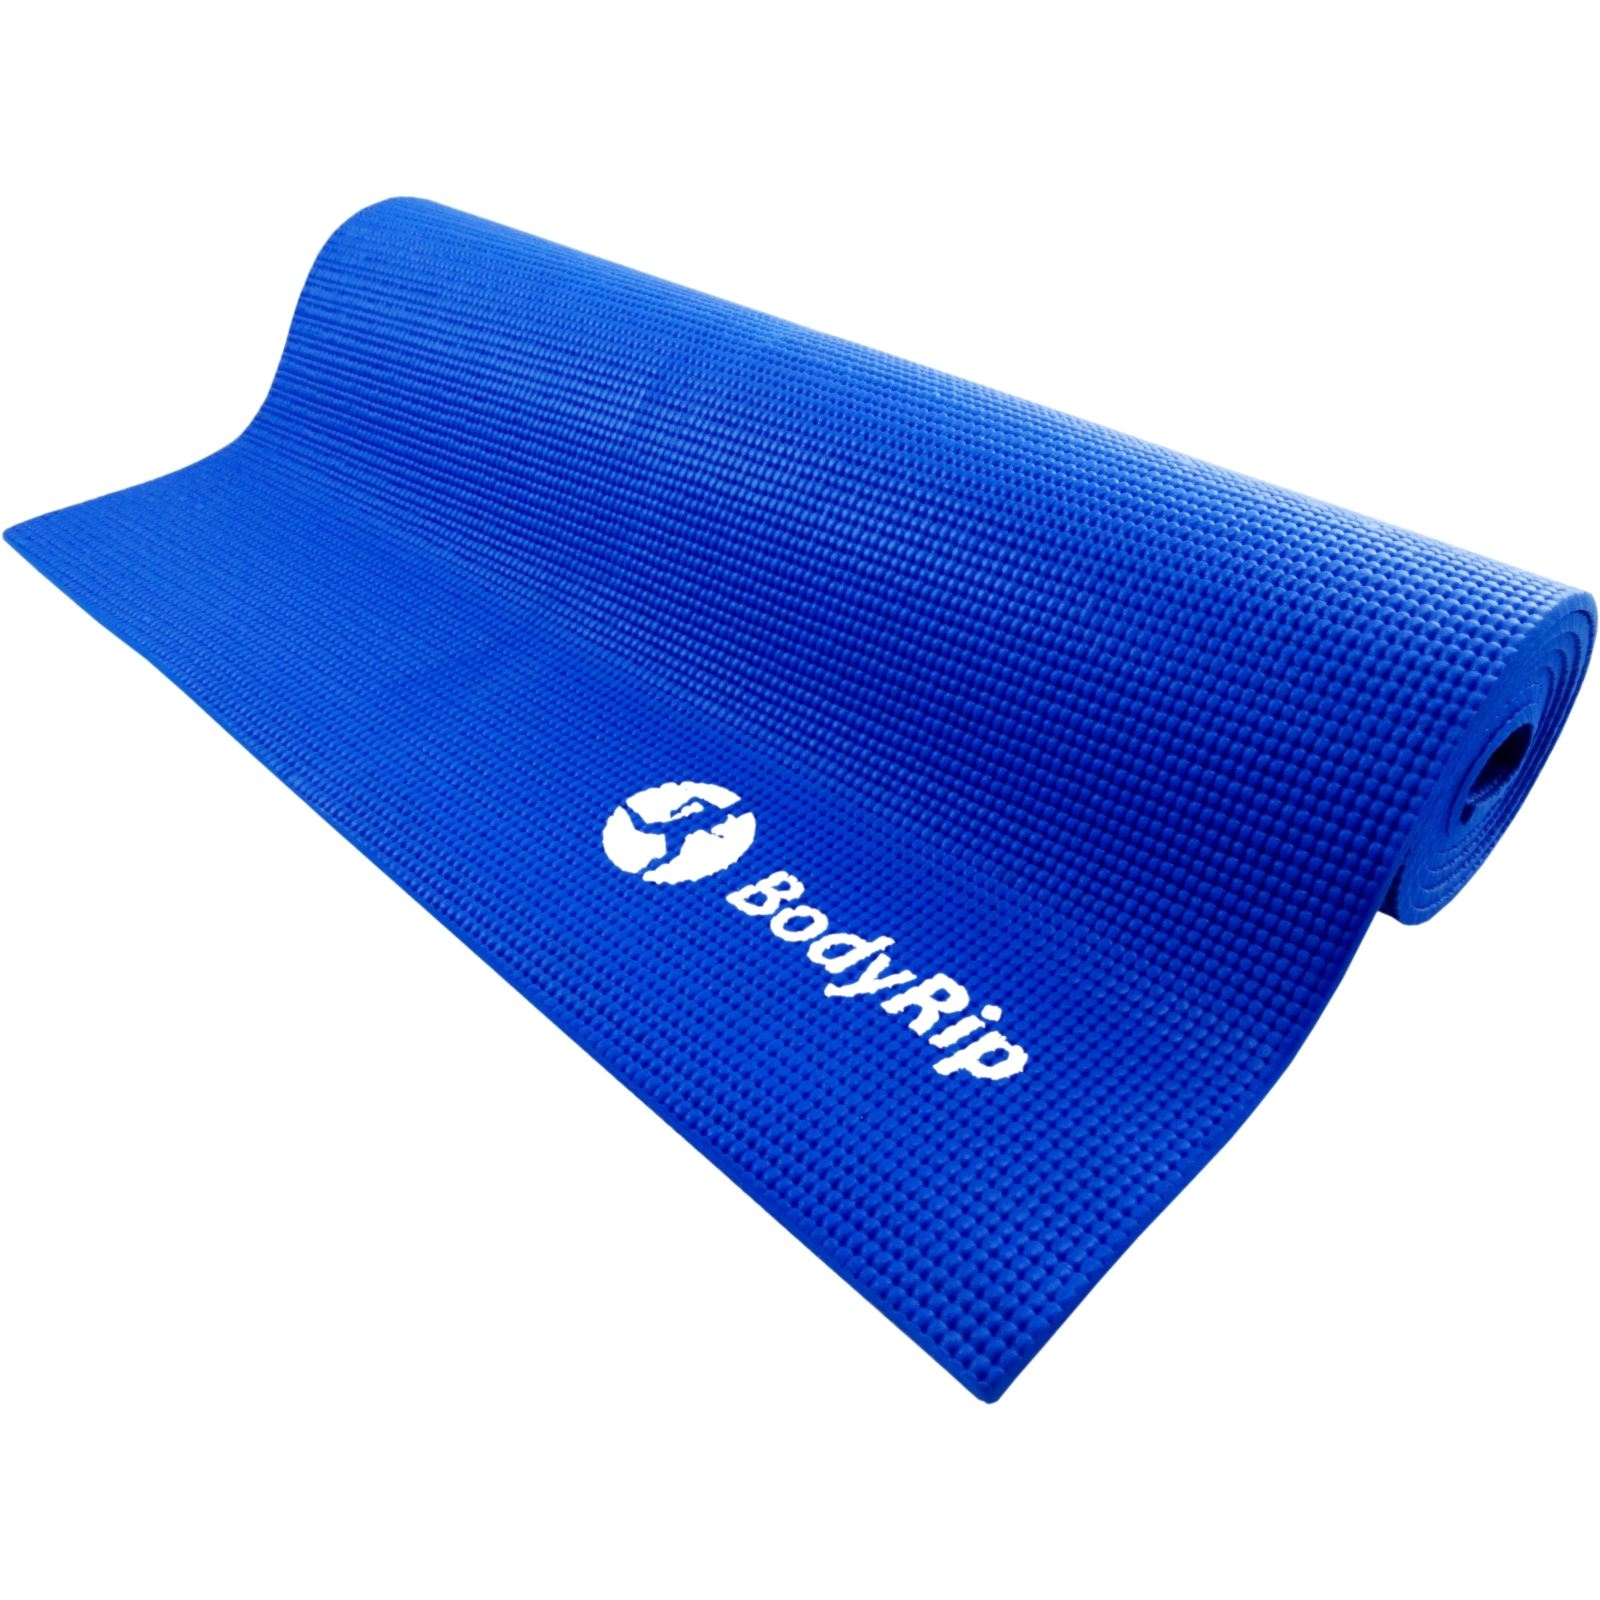 bodyrip thick foam yoga pilates gym mat 6mm the more you buy the less you pay ebay. Black Bedroom Furniture Sets. Home Design Ideas